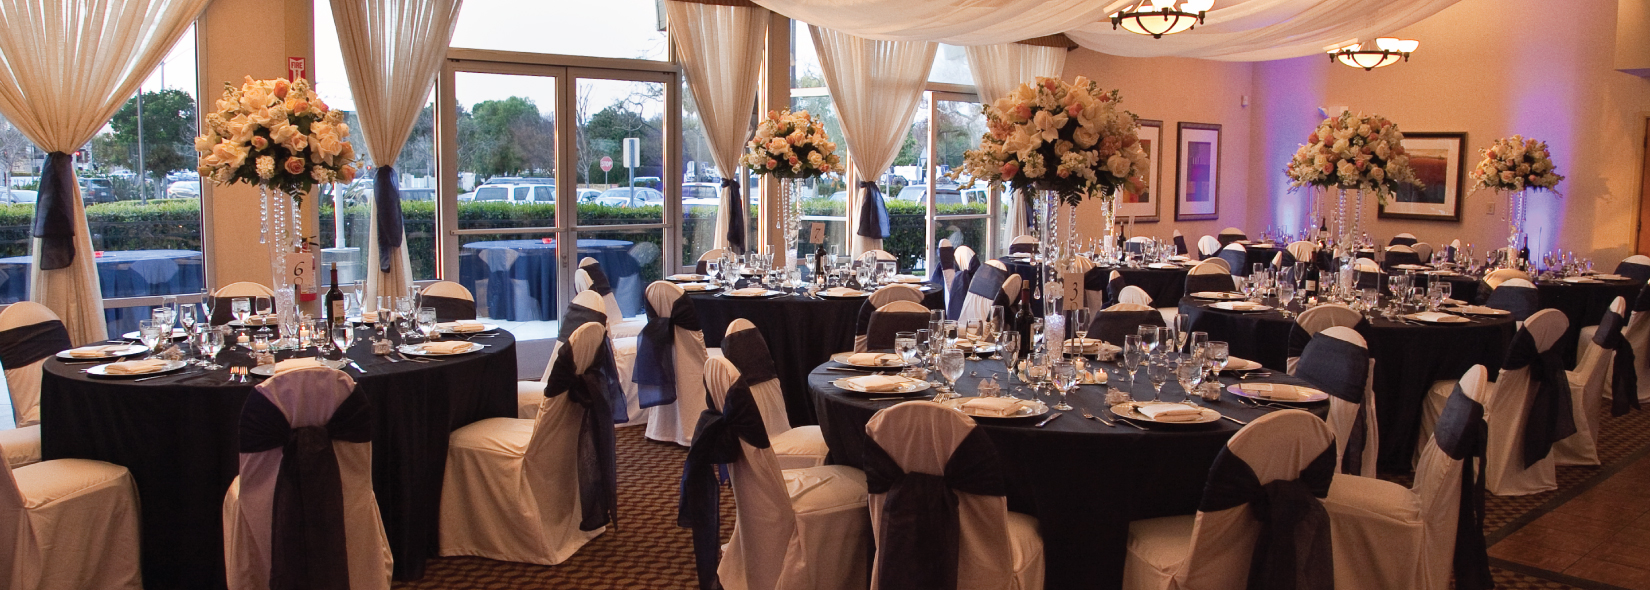 Affordable Outdoor Long Beach Weddings Venue